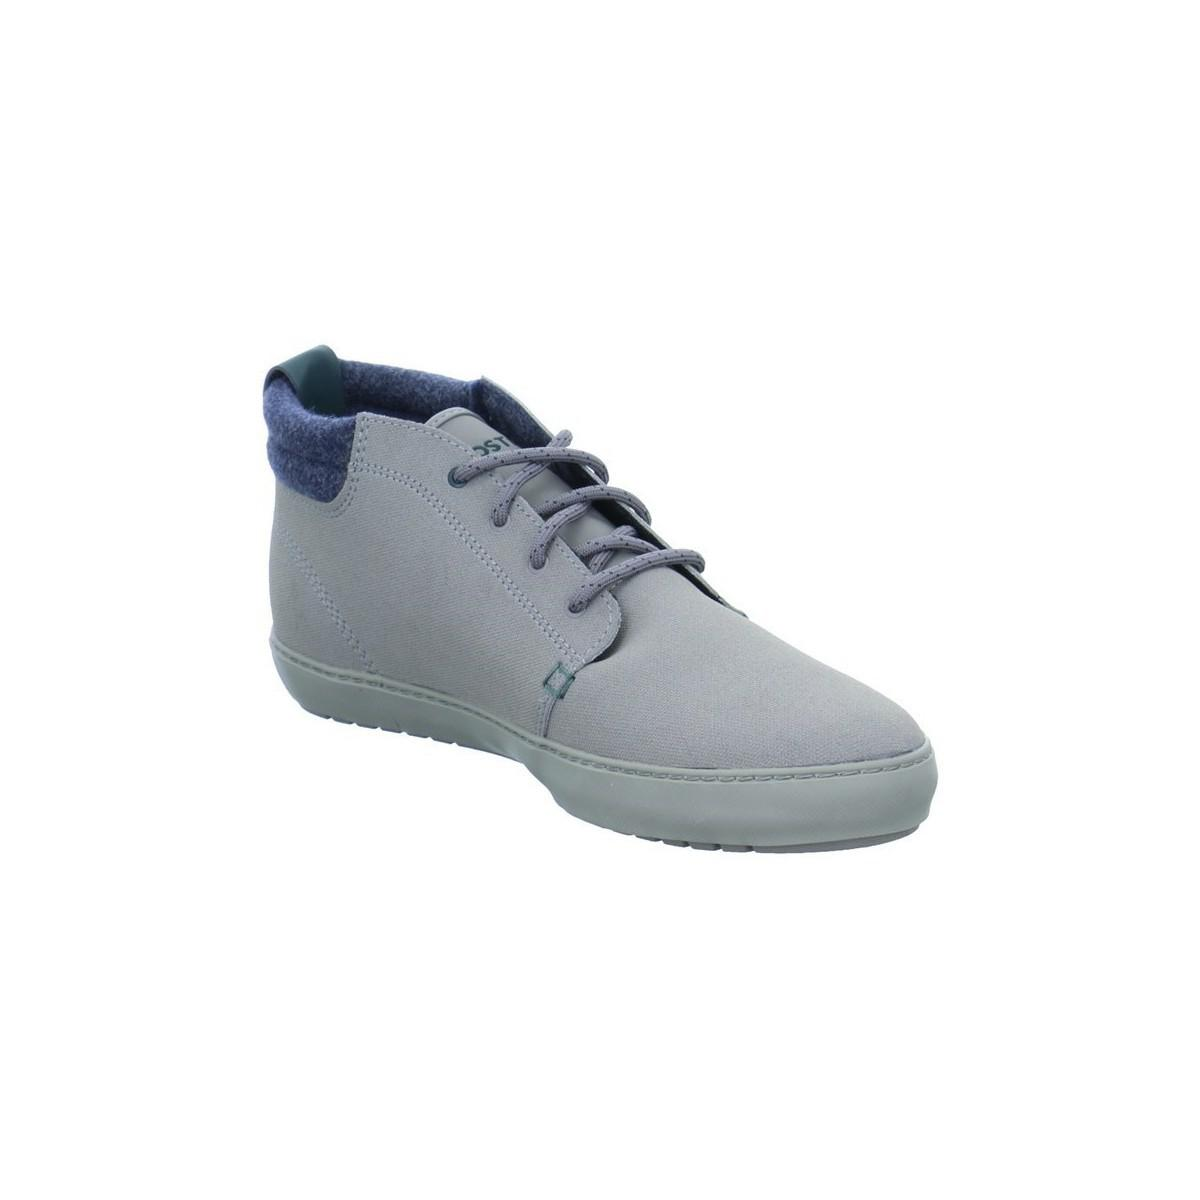 1e813c757 Lacoste Ampthill Terra Men s Shoes (high-top Trainers) In Grey in ...